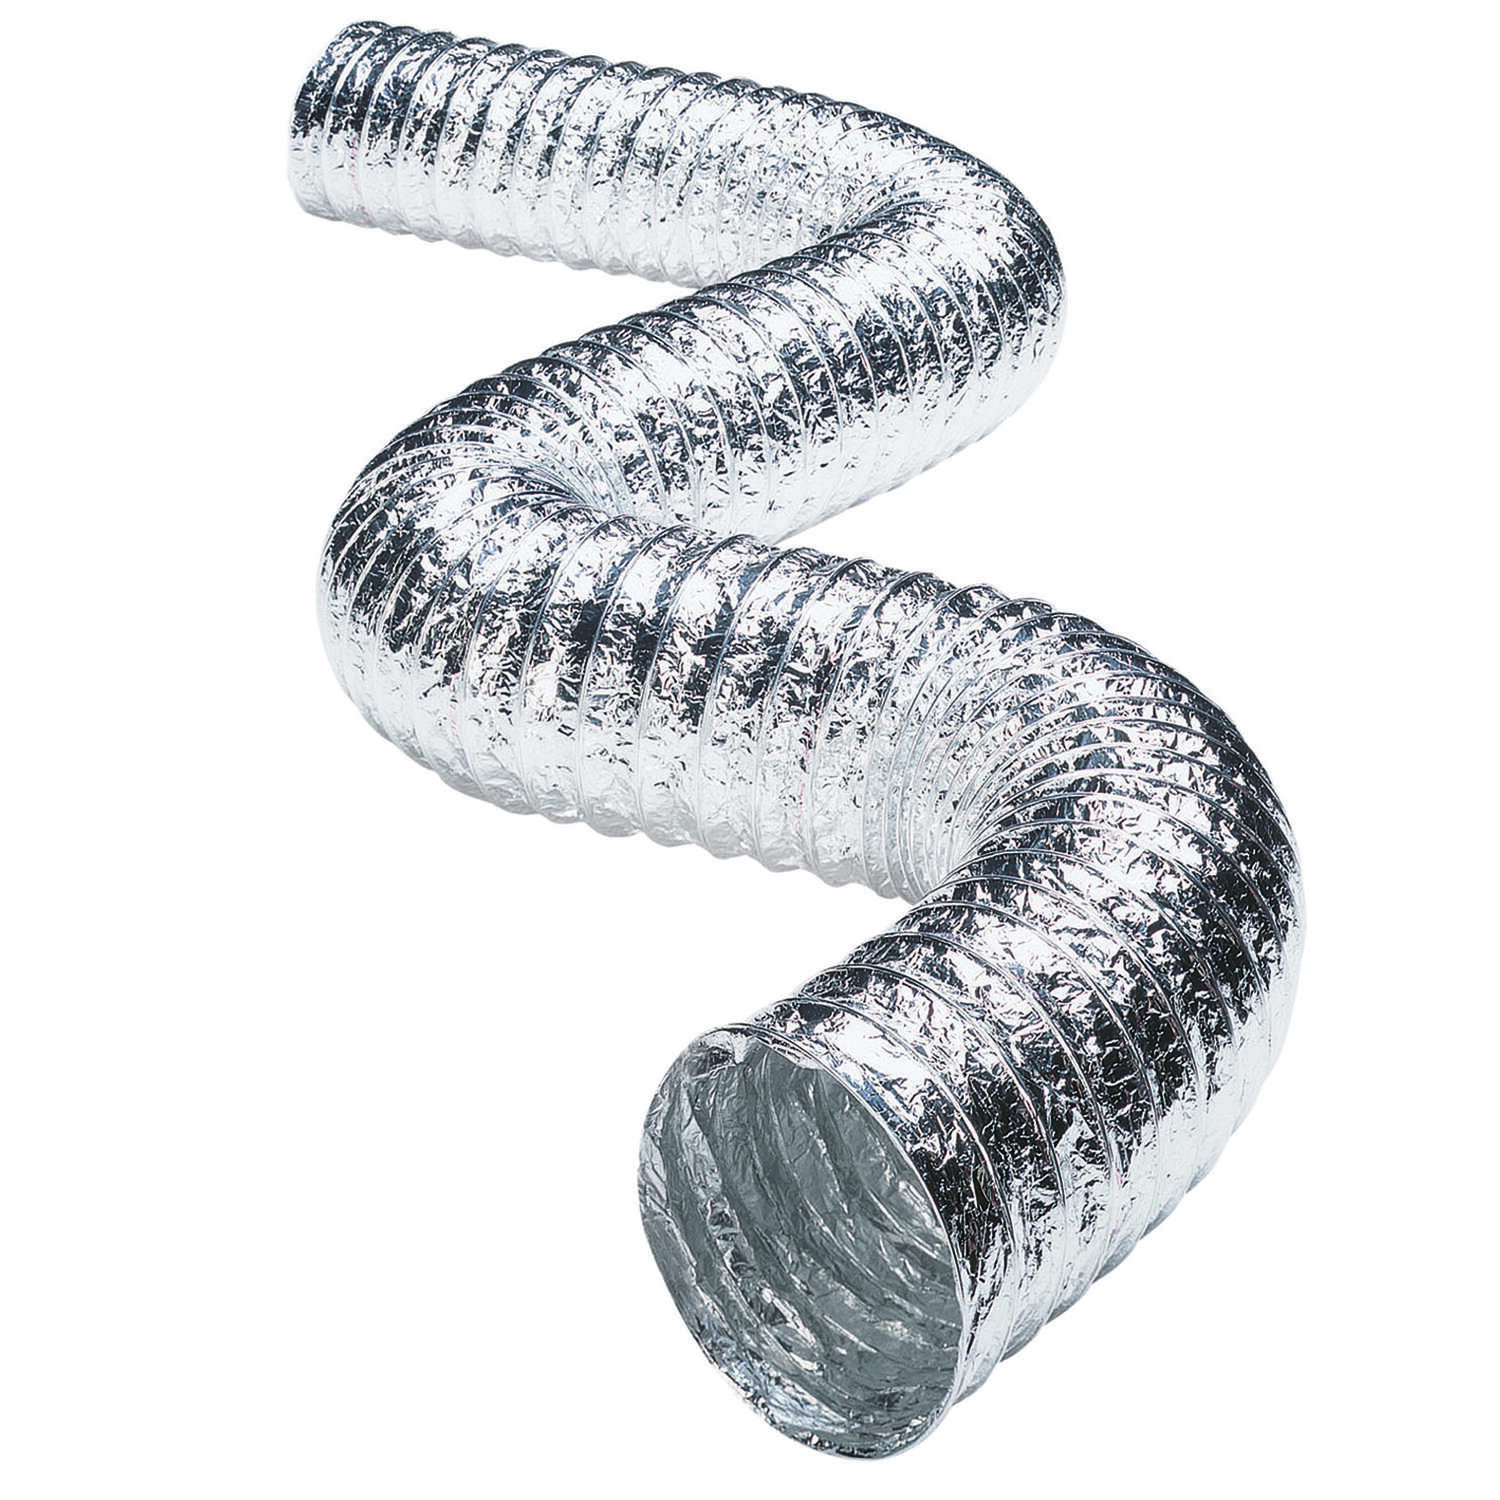 Deflect-O  Jordan  25 ft. L x 4 in. Dia. Dryer Vent Duct  Aluminum  Silver/White